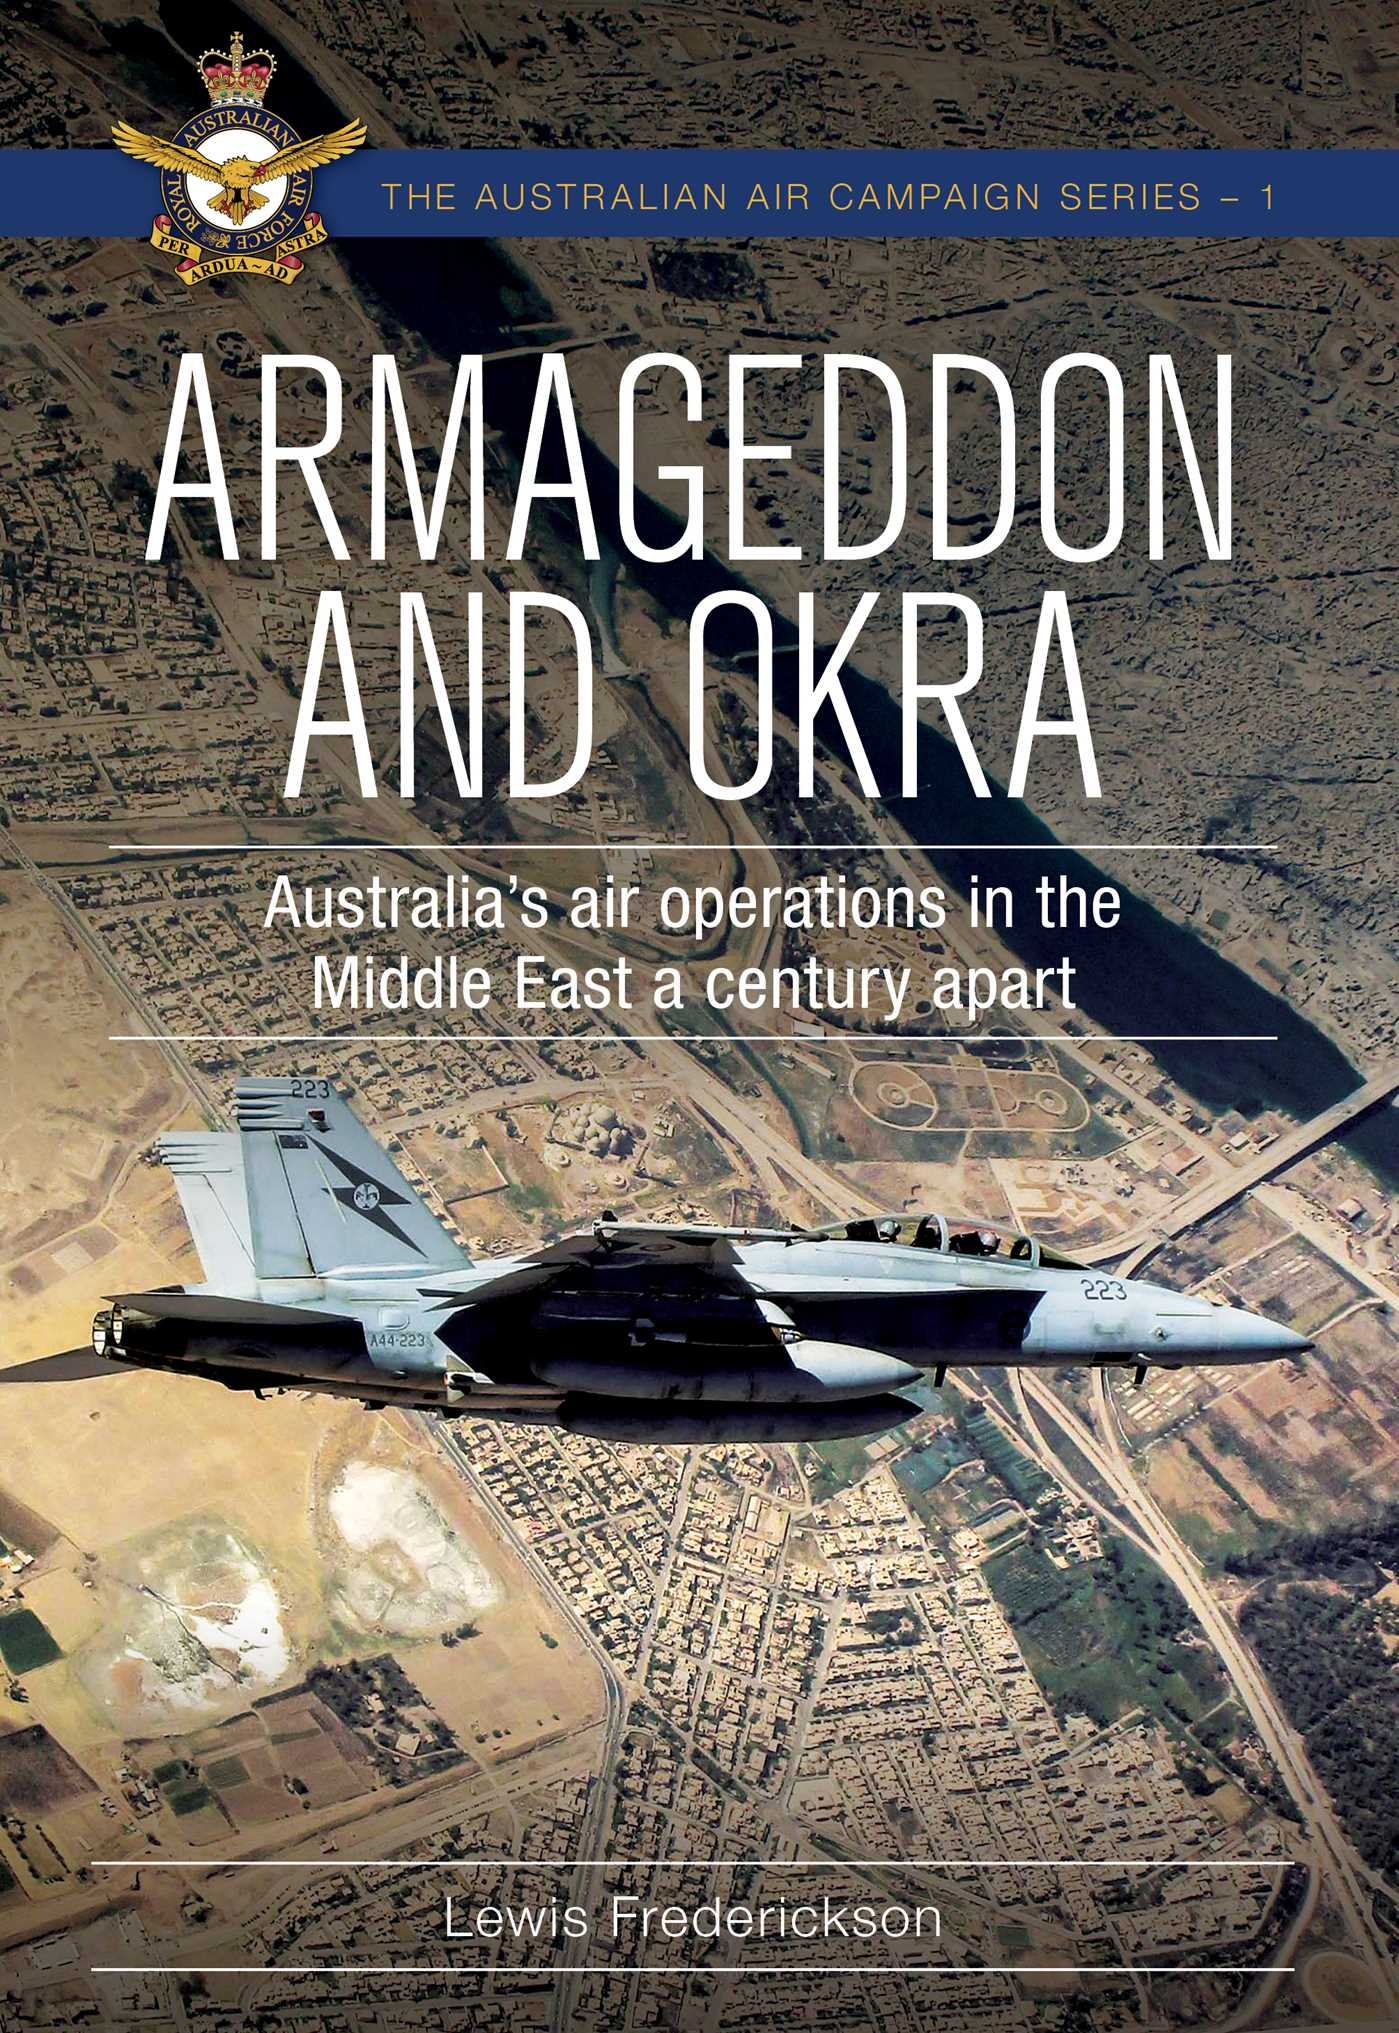 [PDF] [EPUB] Armageddon and OKRA: Australia's air operations in the Middle East a century apart Download by Lewis Frederickson